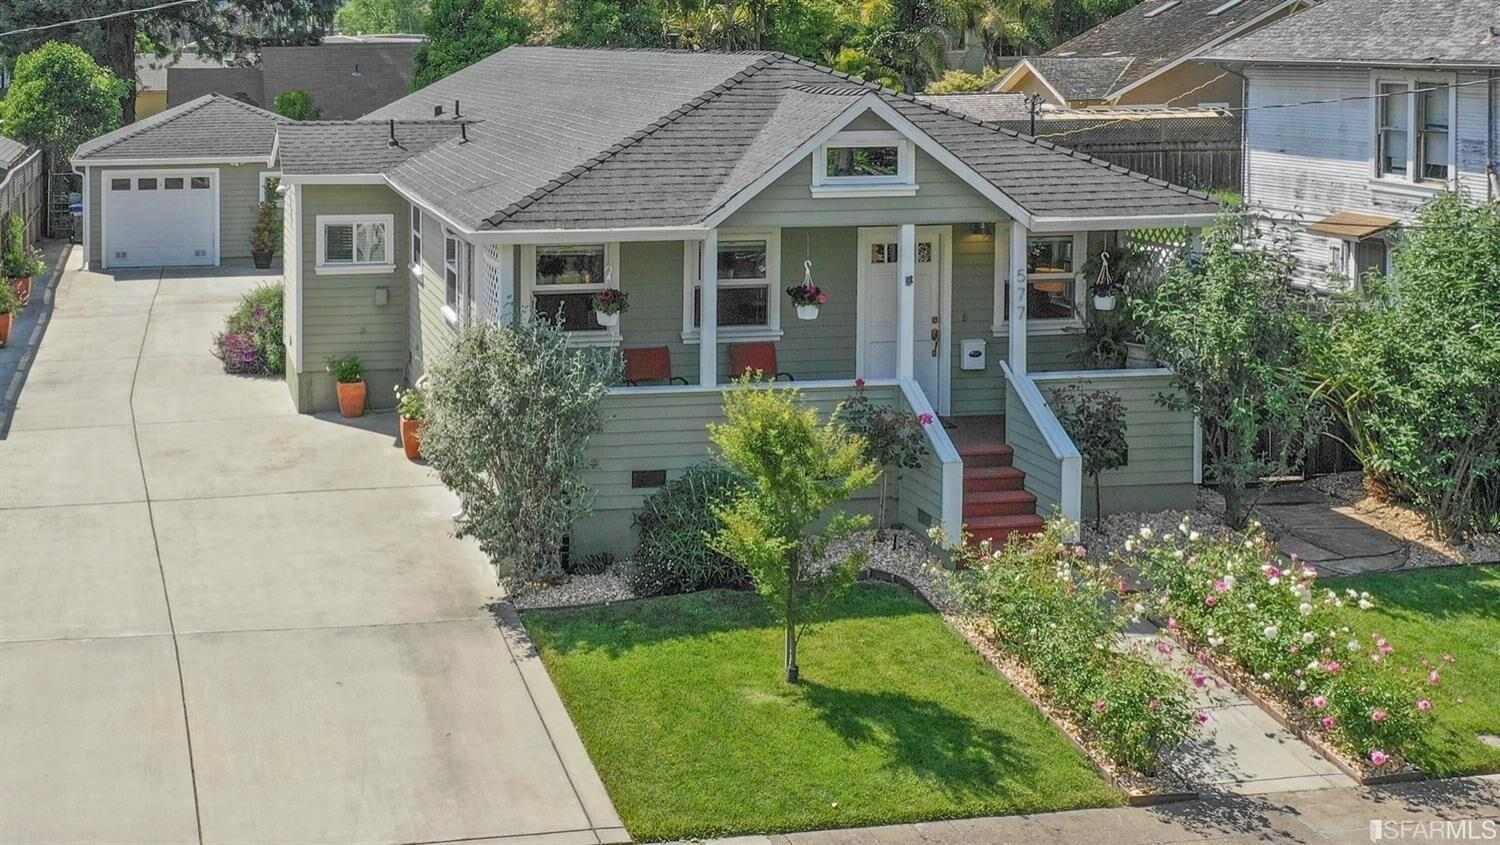 30 Homes Recently Listed in the Napa Valley